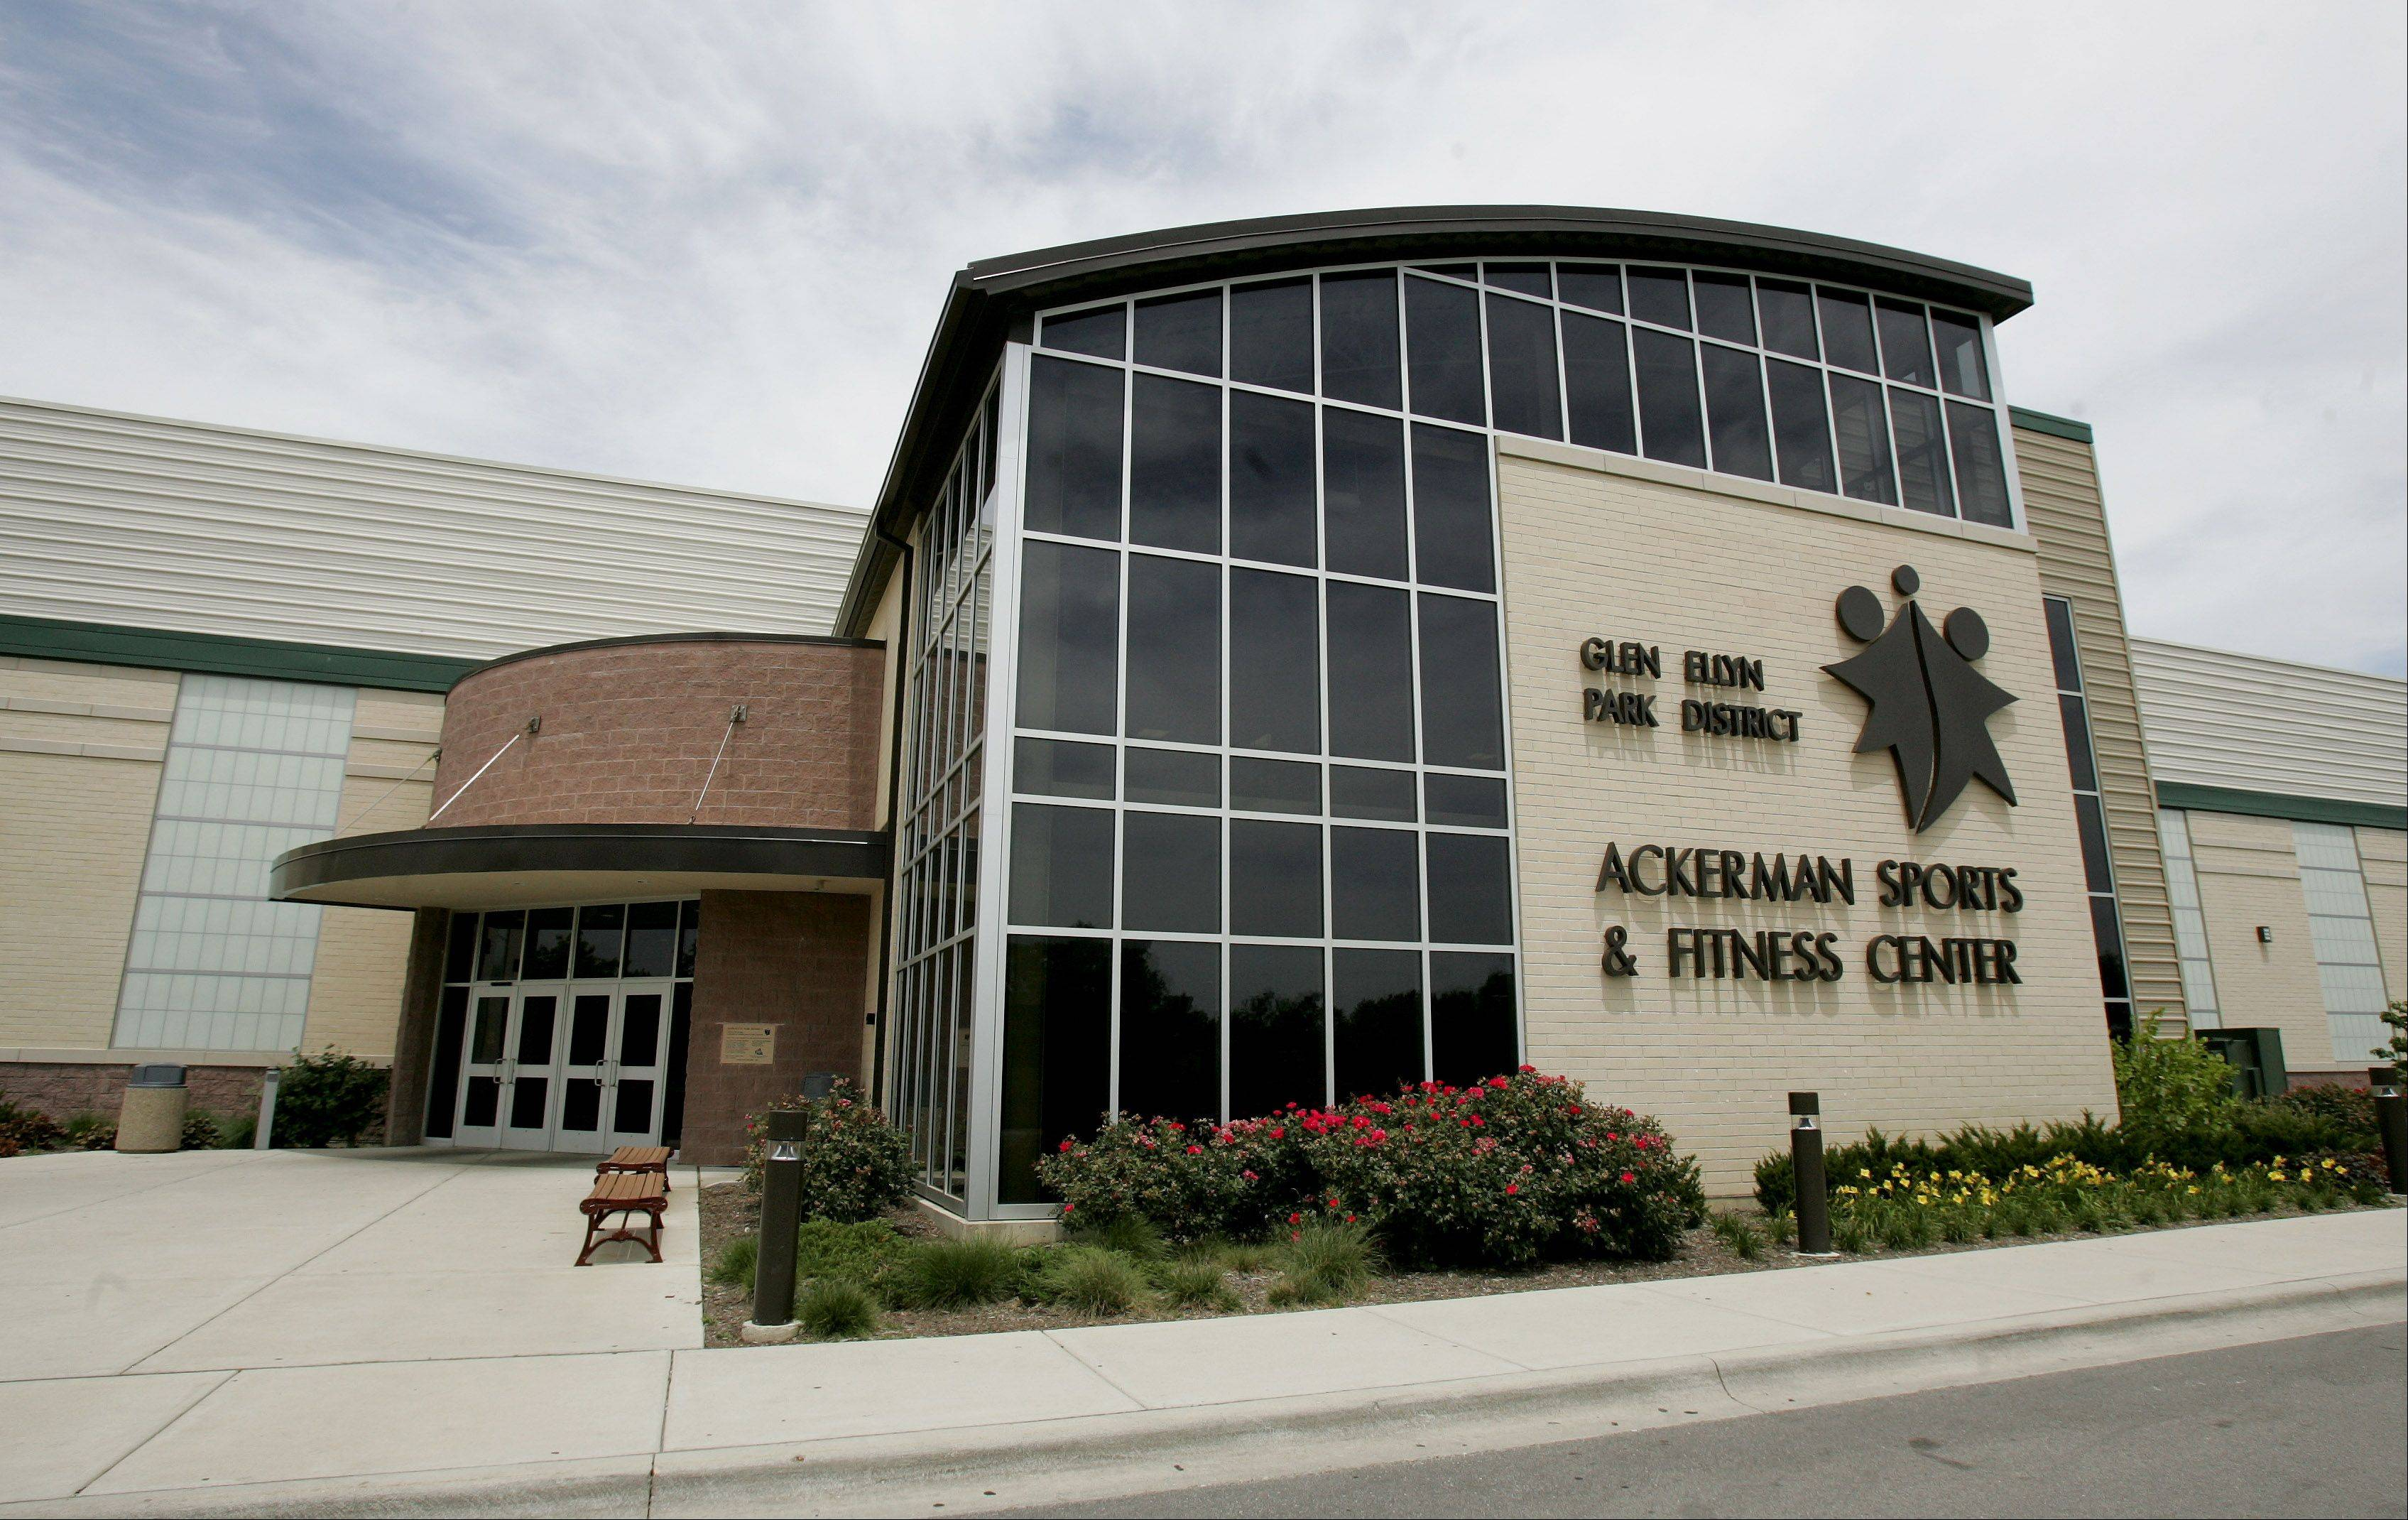 The Glen Ellyn Park District and T.A. Bowman Constructors filed suit against each other for breach of contract last year as a result of roof leaks at the Ackerman Sports & Fitness Center, which opened in 2010. A judge on Thursday refused to dismiss the park district's countersuit, which allows the legal dispute to continue.